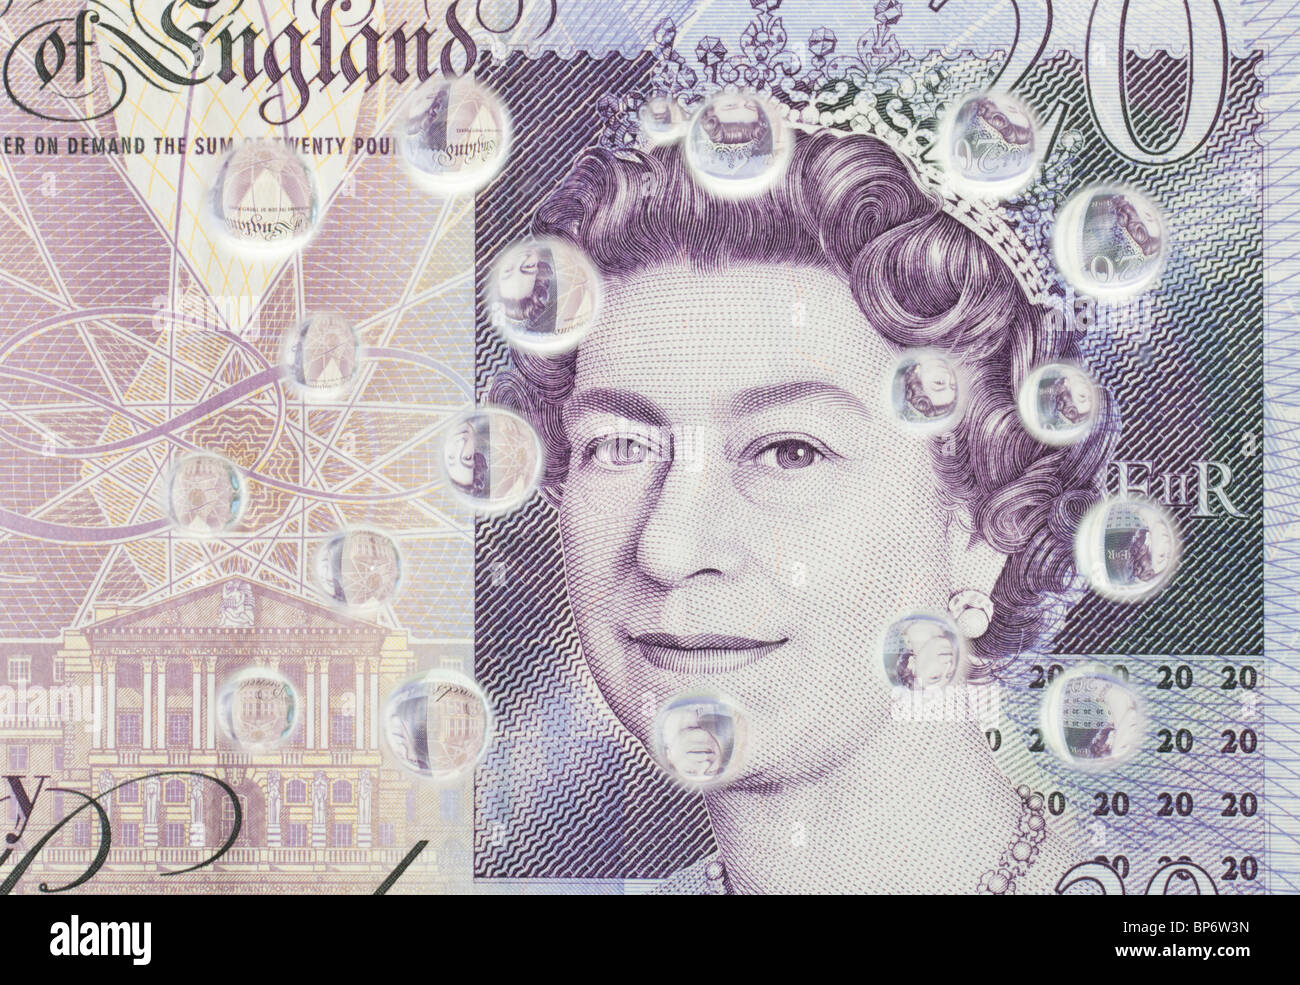 Water droplets reflecting on a twenty pound note in British currency - Stock Image